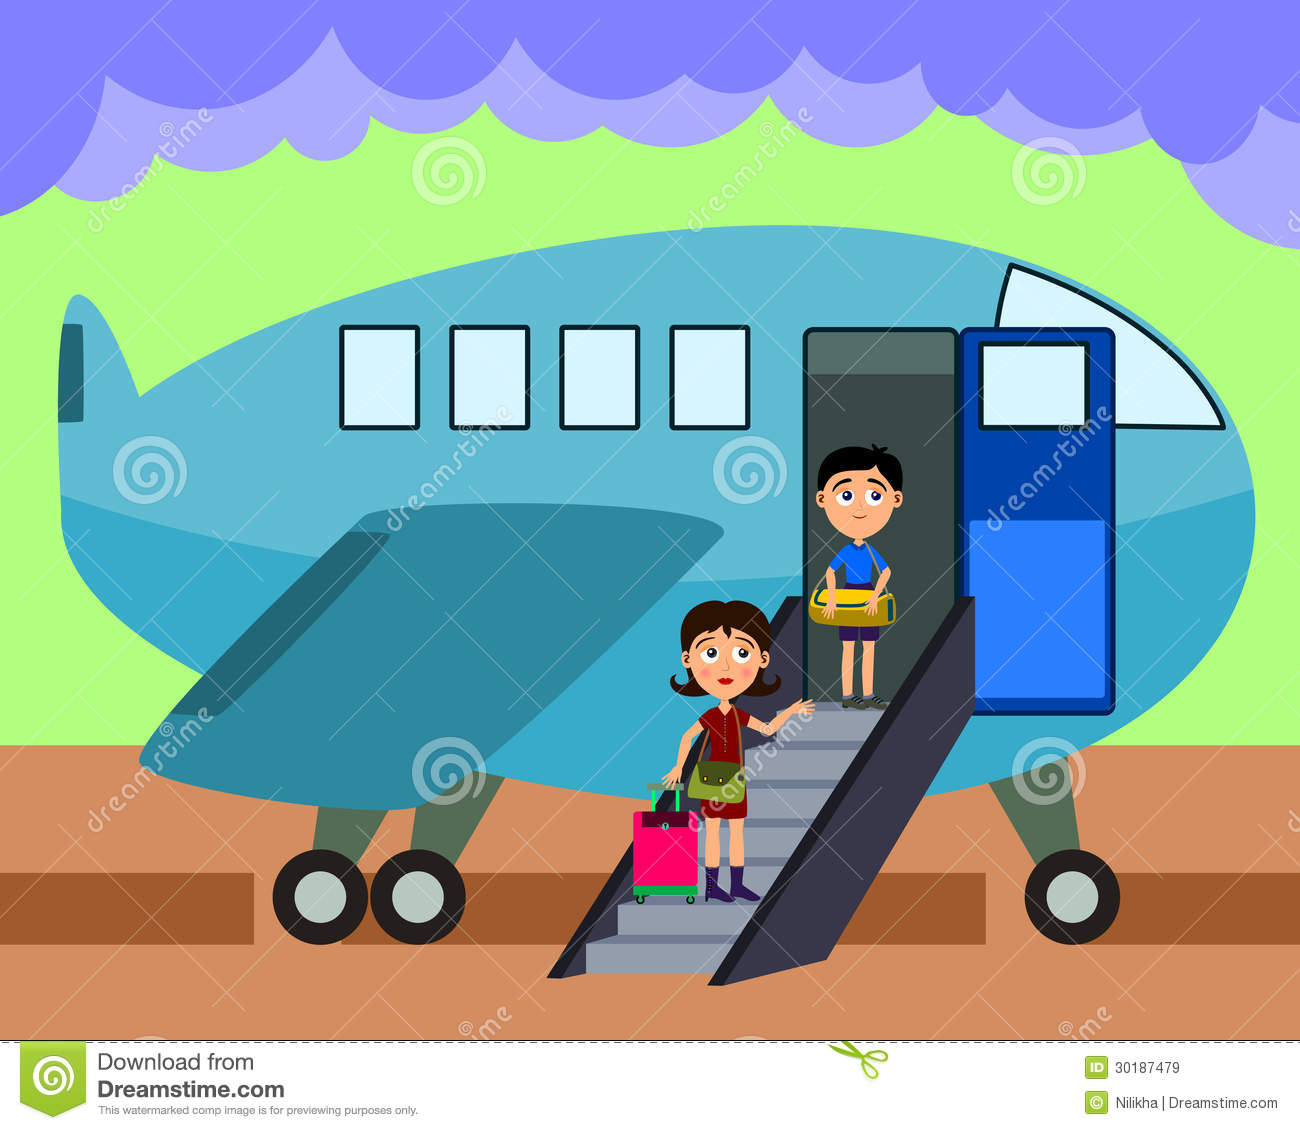 Boarding the plane clipart. Clipartfest son an airplane